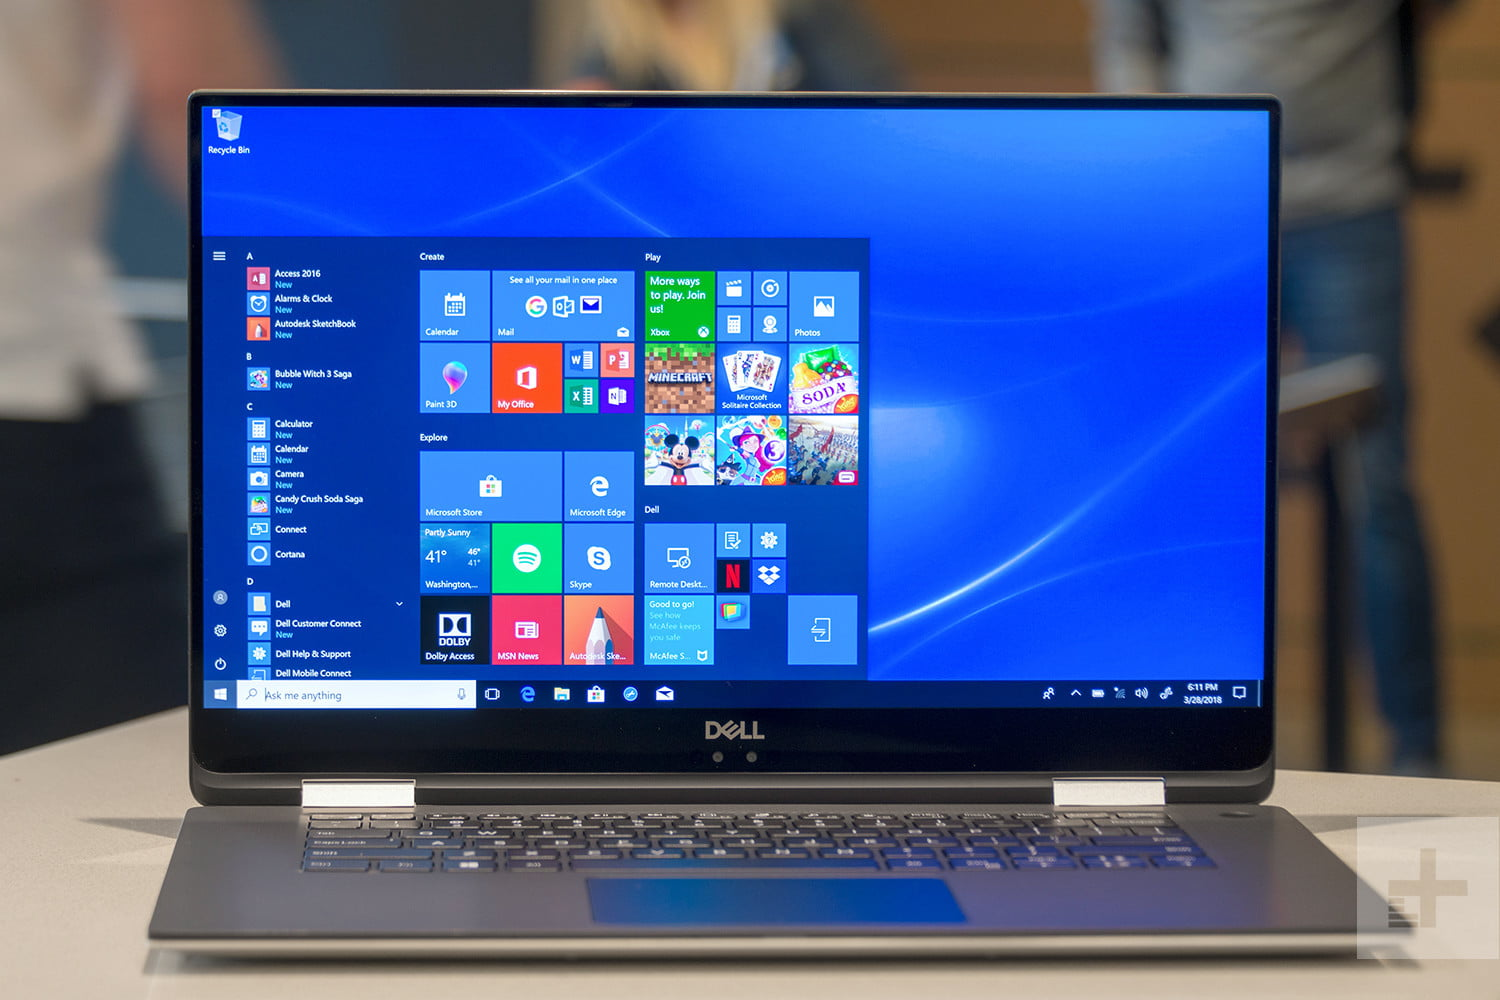 Dell XPS 15 2-in-1 Review: An Experiment Gone Right